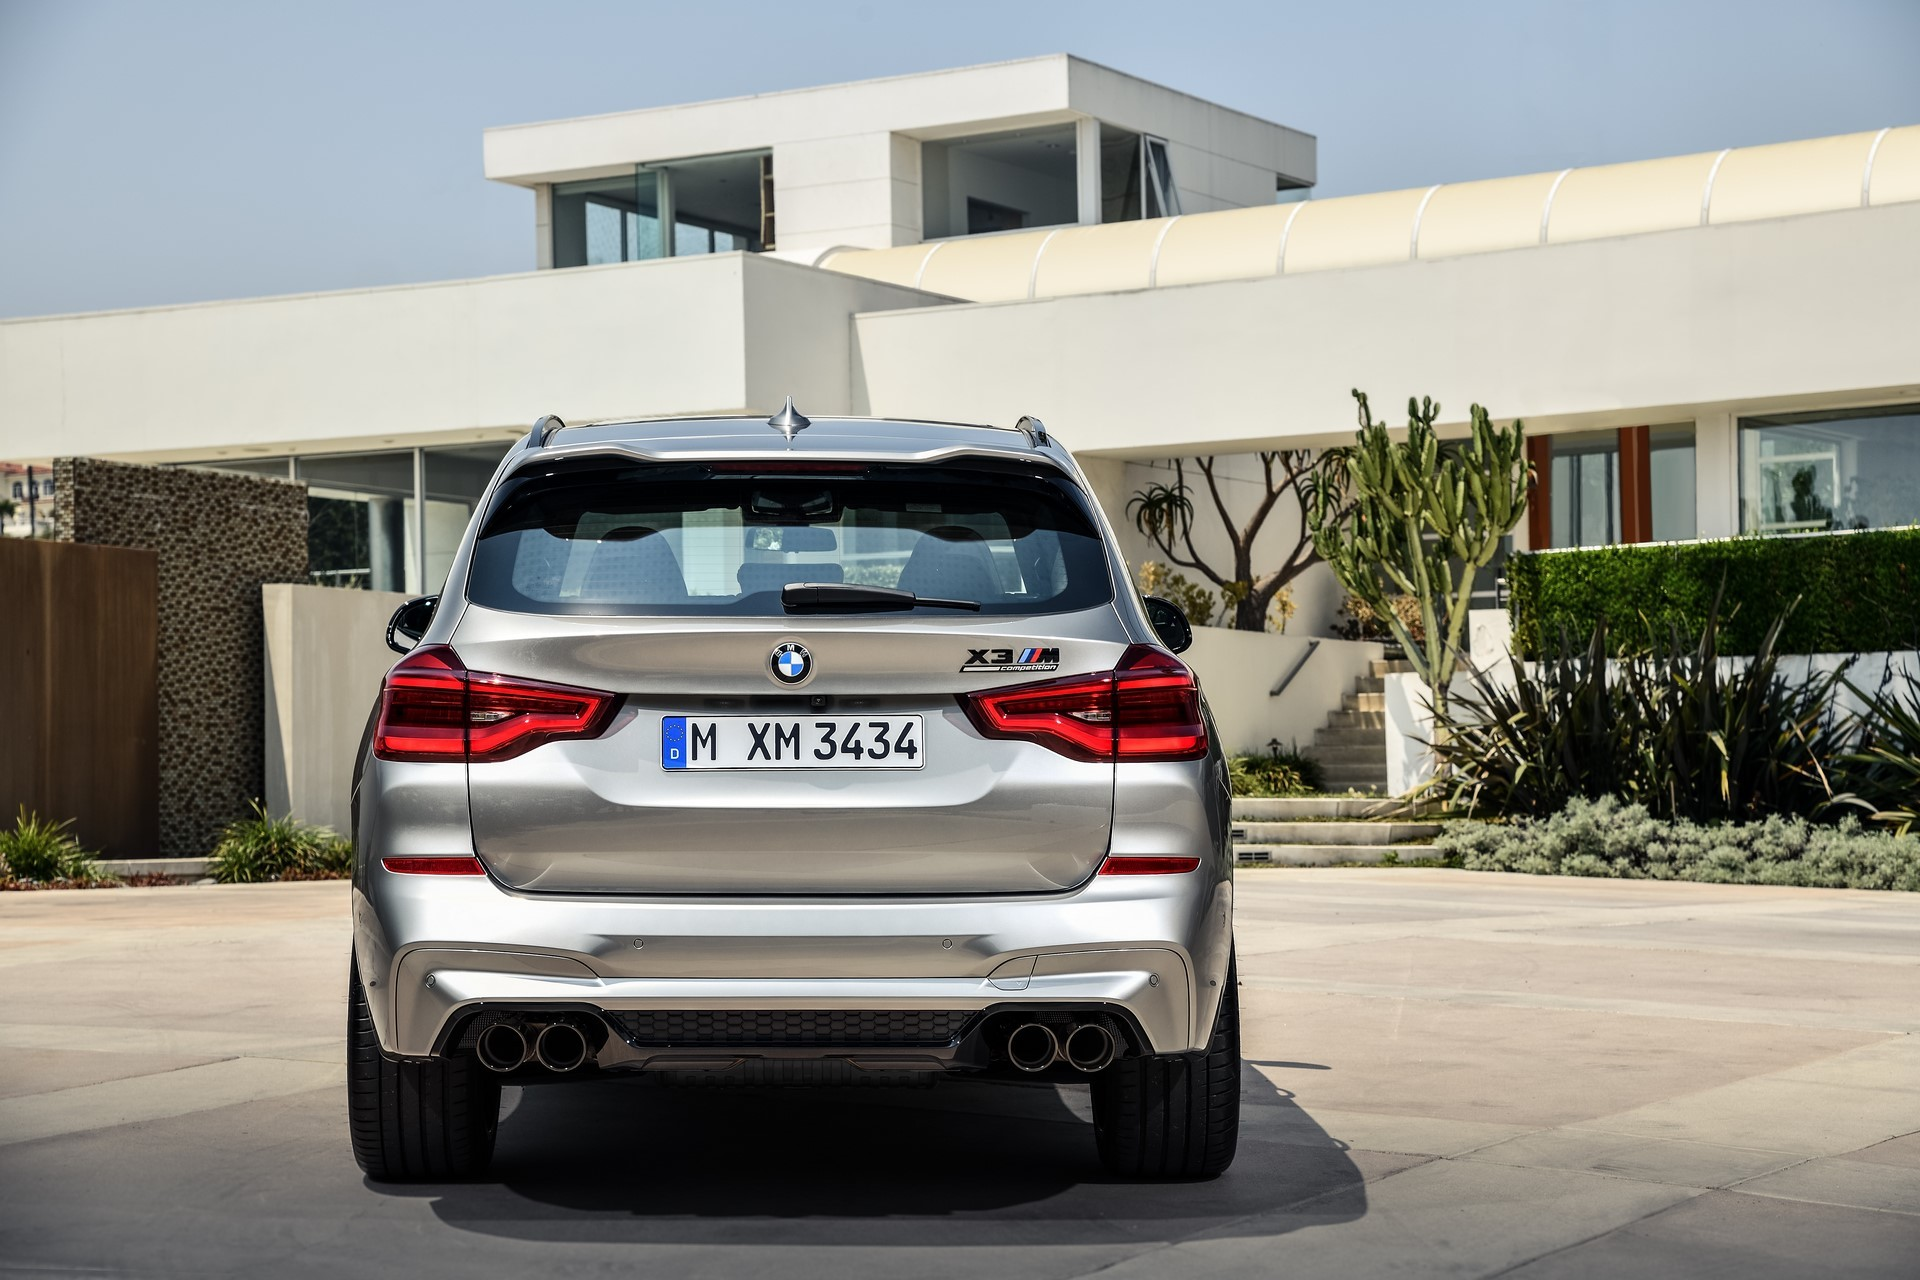 BMW X3 M and X4 M 2019 (7)